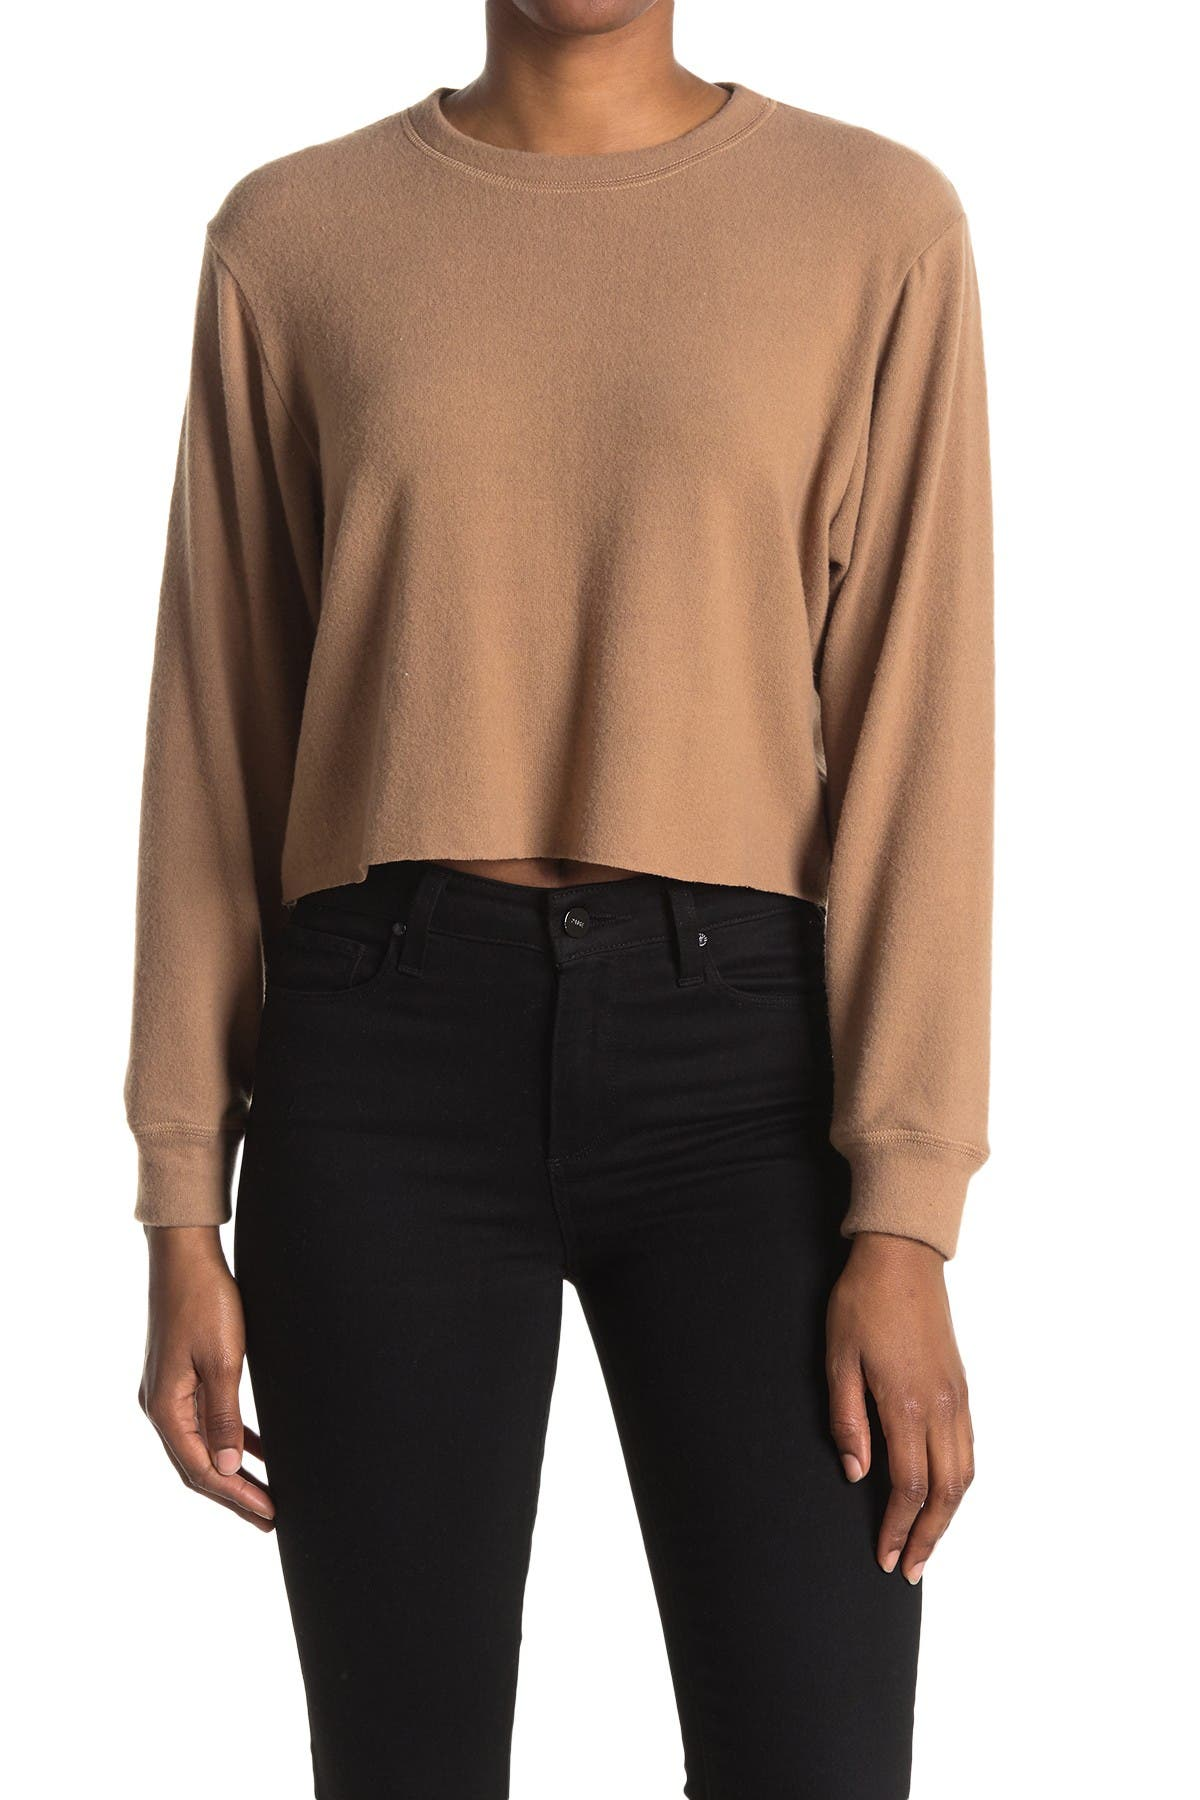 Image of LA LA LAND CREATIVE CO Brushed Knit Cropped Pullover